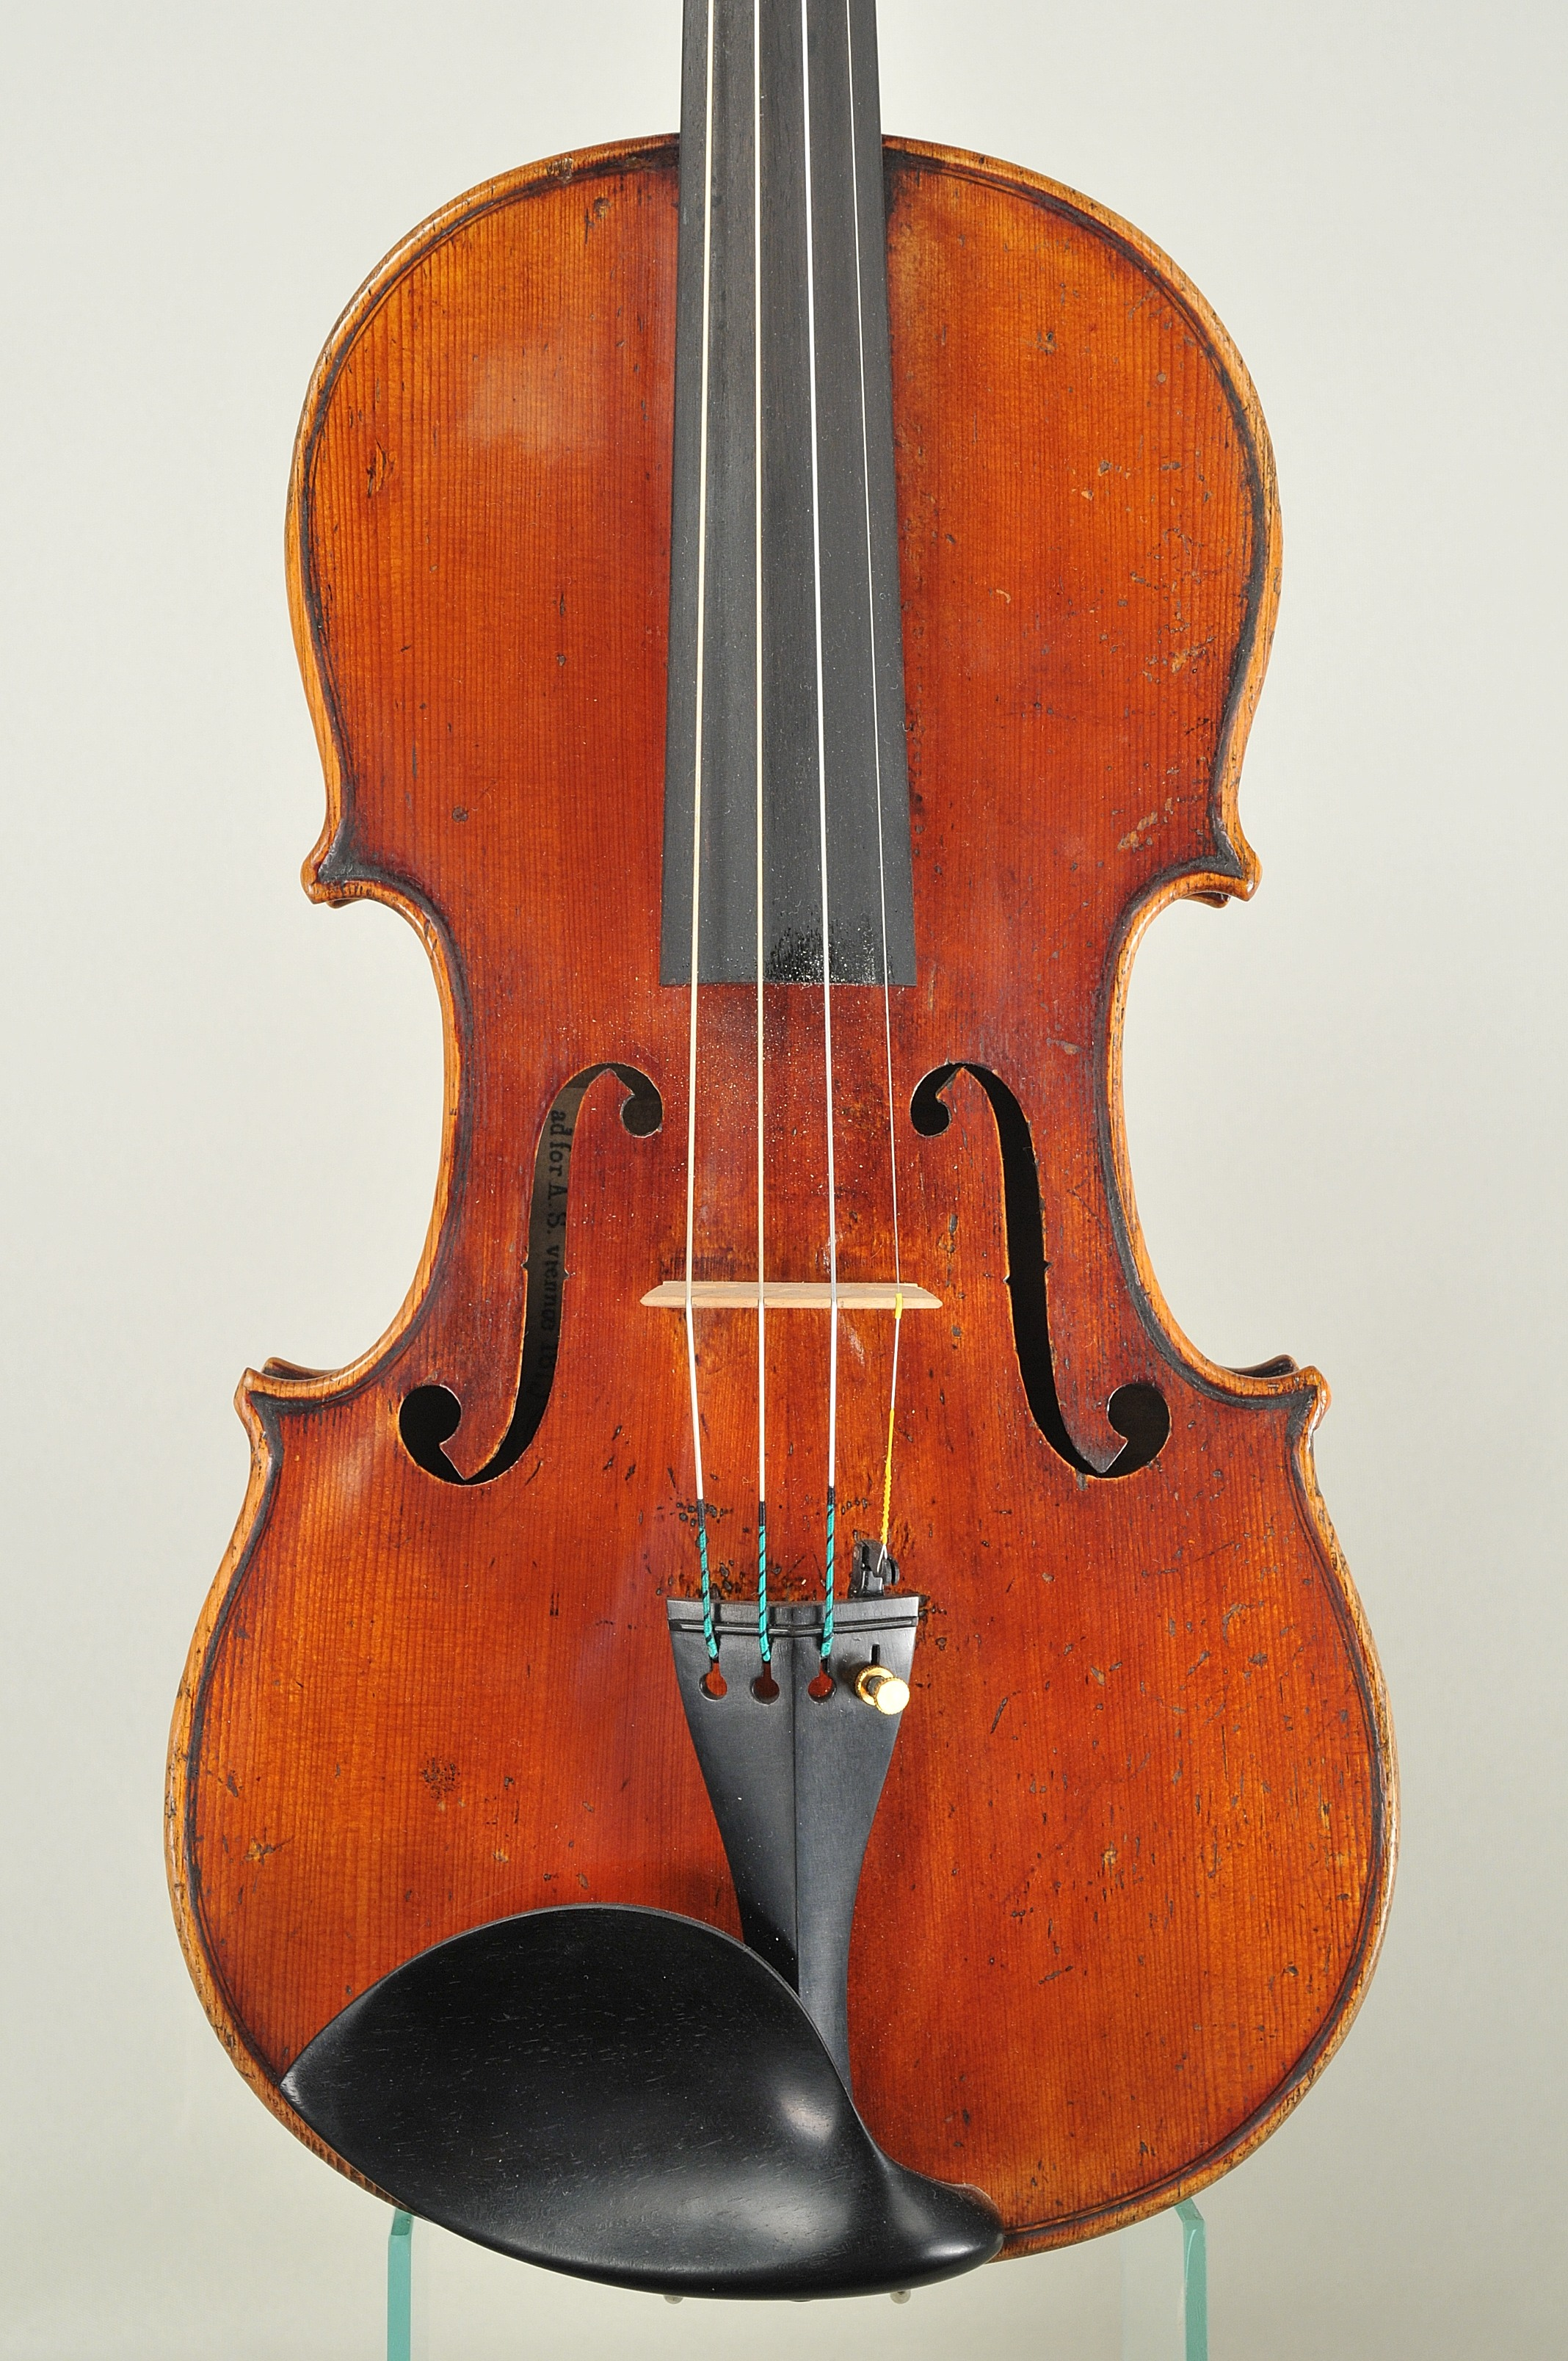 Thomas Zach 1812-1892 Violin, A.S.viennae 1873